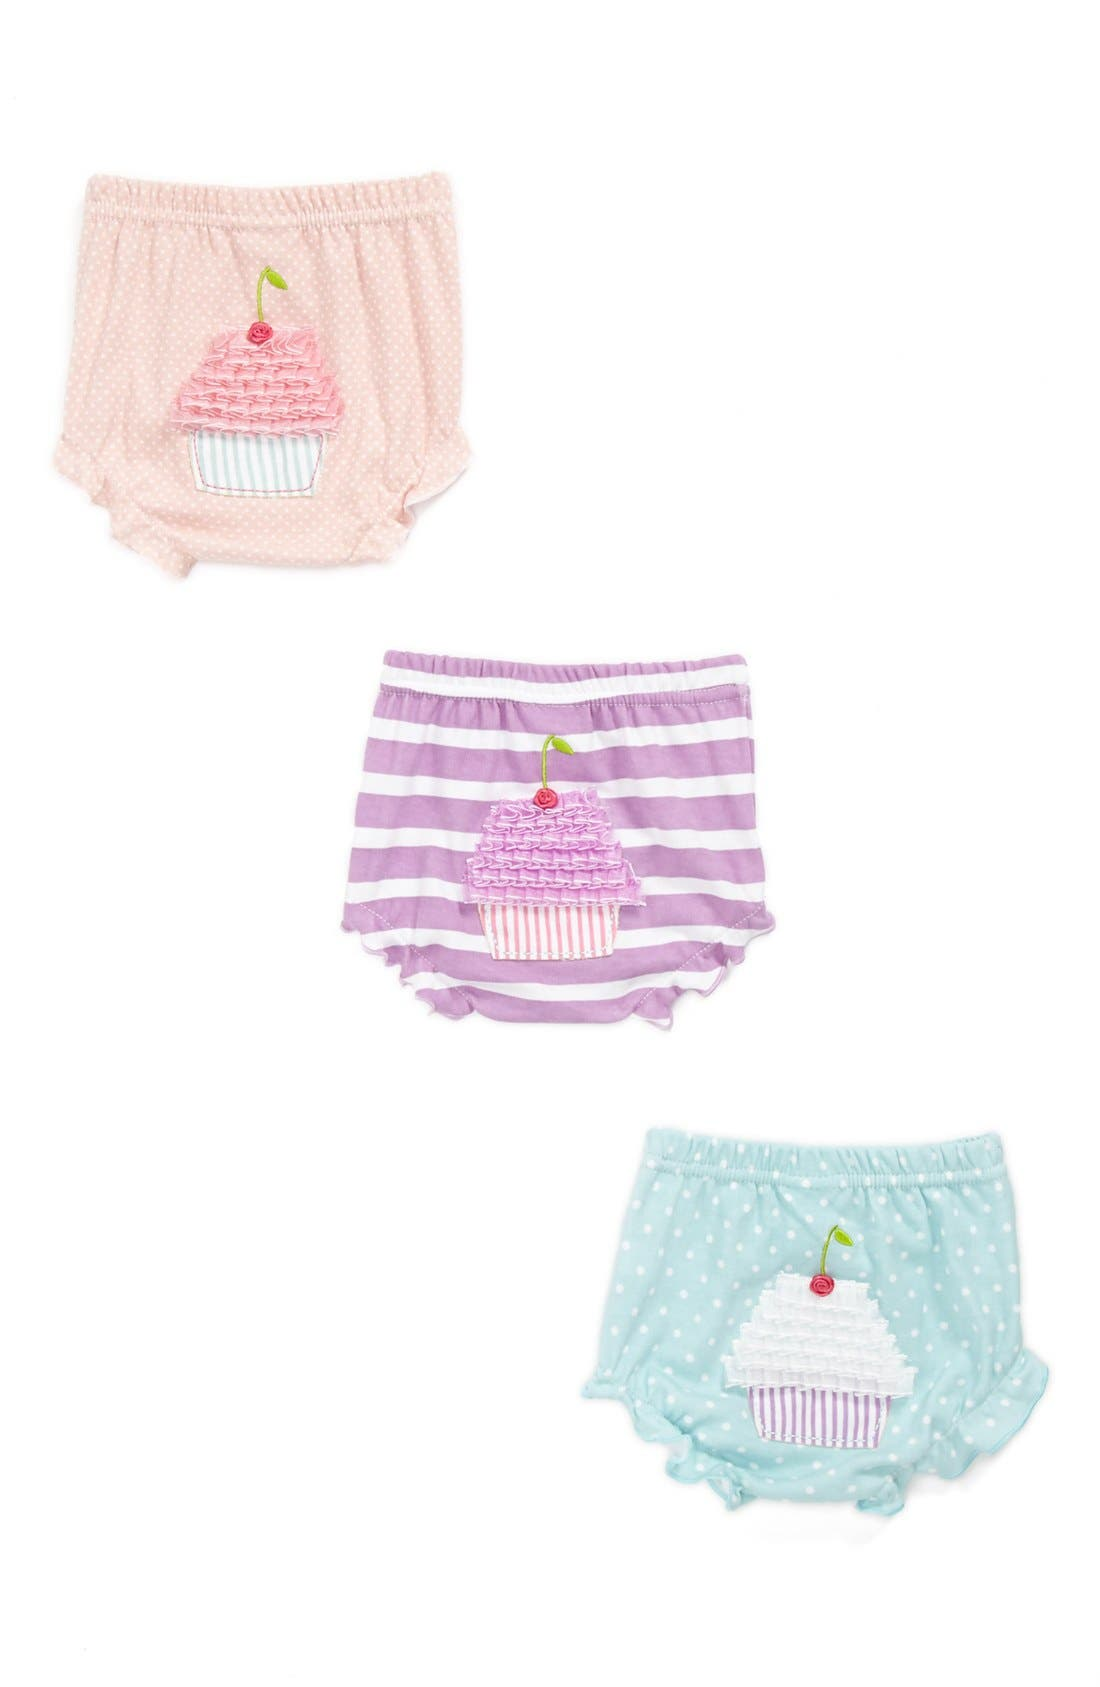 Main Image - Baby Aspen 'Baby Cakes' Bloomers (3-Pack) (Baby)